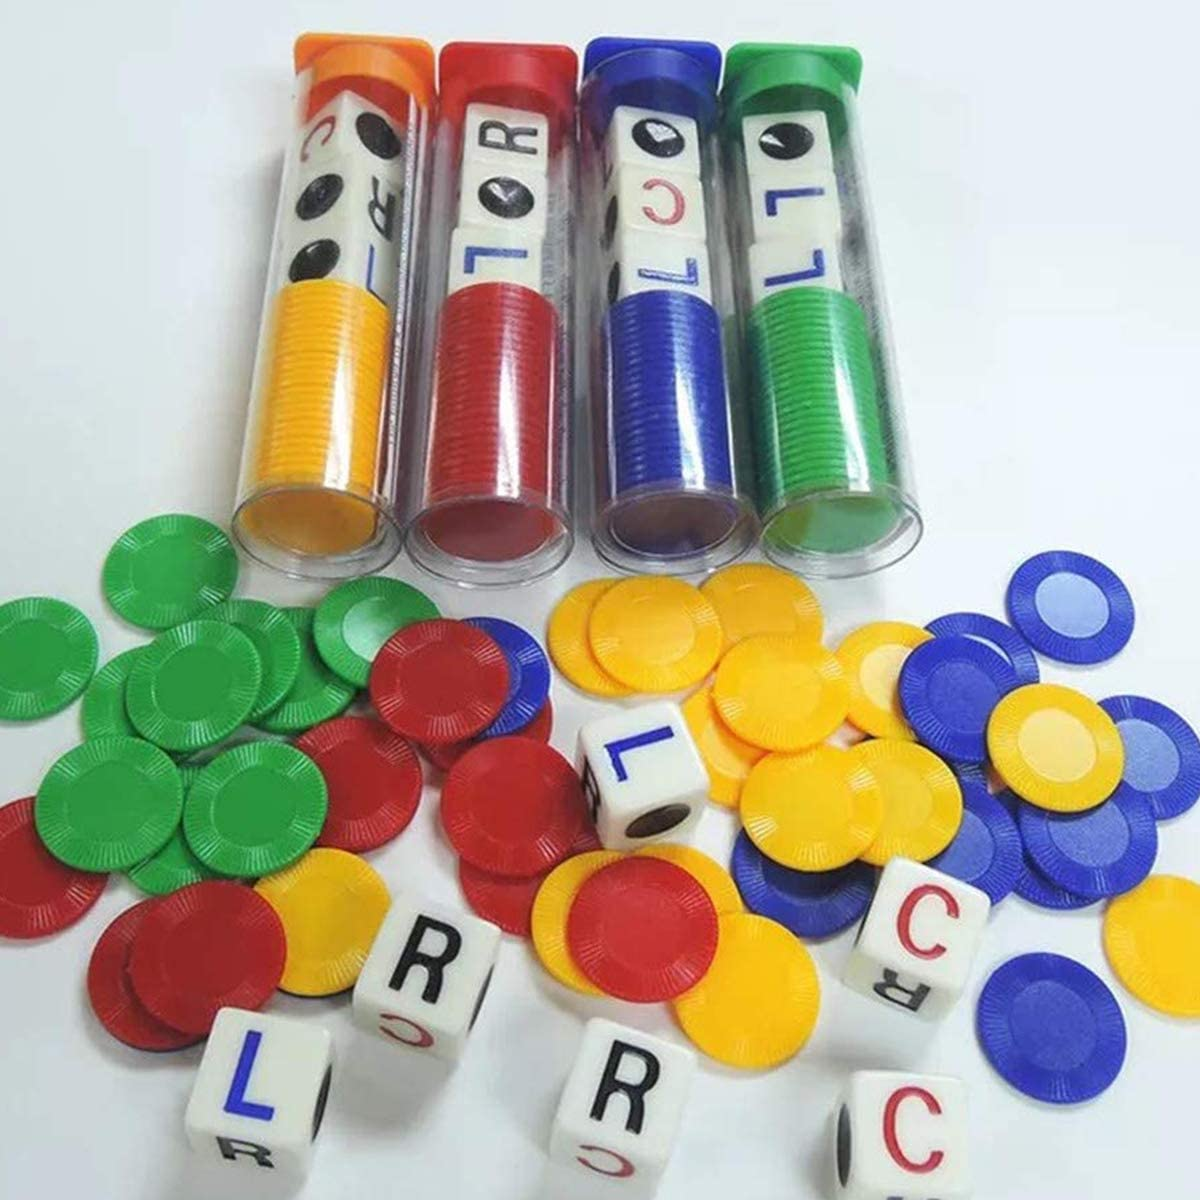 4 Tube Combination Left Center Right Family Party Dice Game Friends Colleagues Party Joy Blue Green Yellow Red 16 mm LCR Dice Game